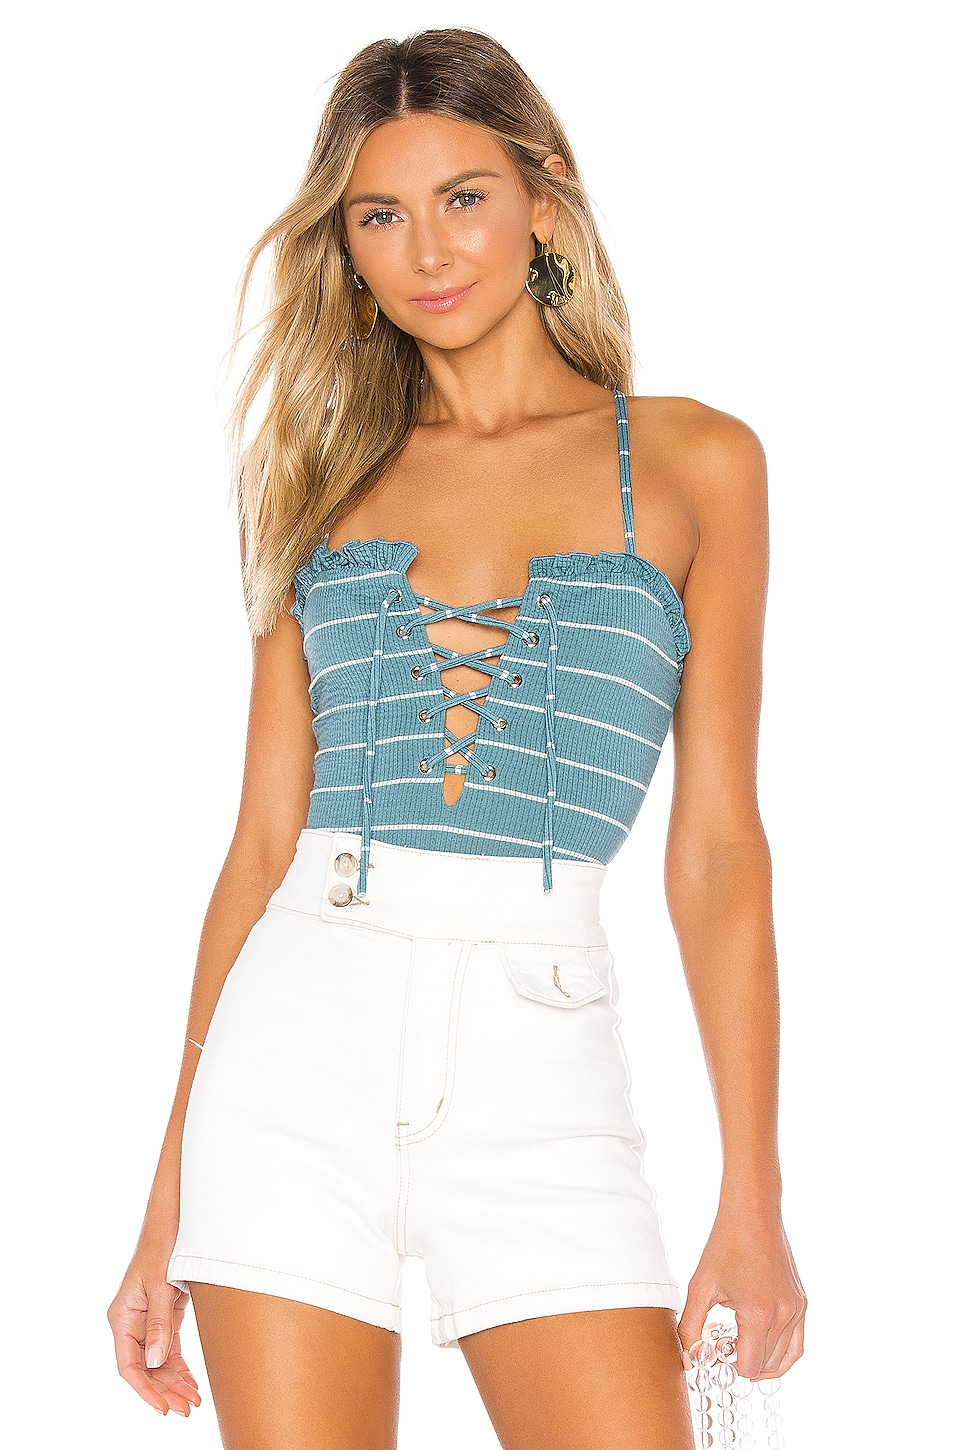 Privacy Please Mina Bodysuit in Teal & White